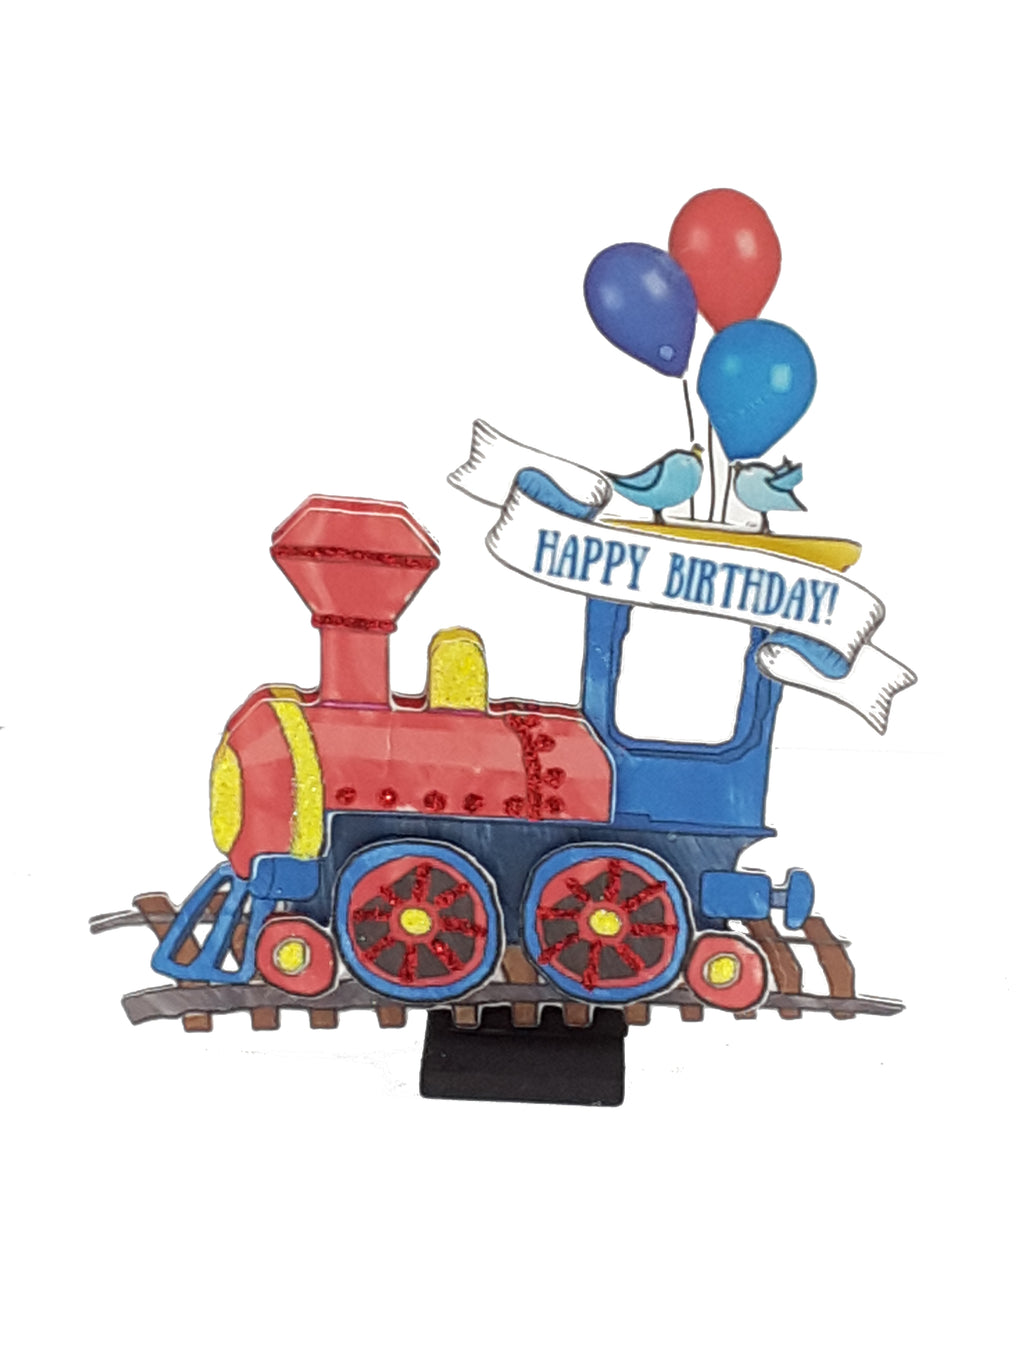 Adorable 3D Personalized Happy Birthday card for young boy